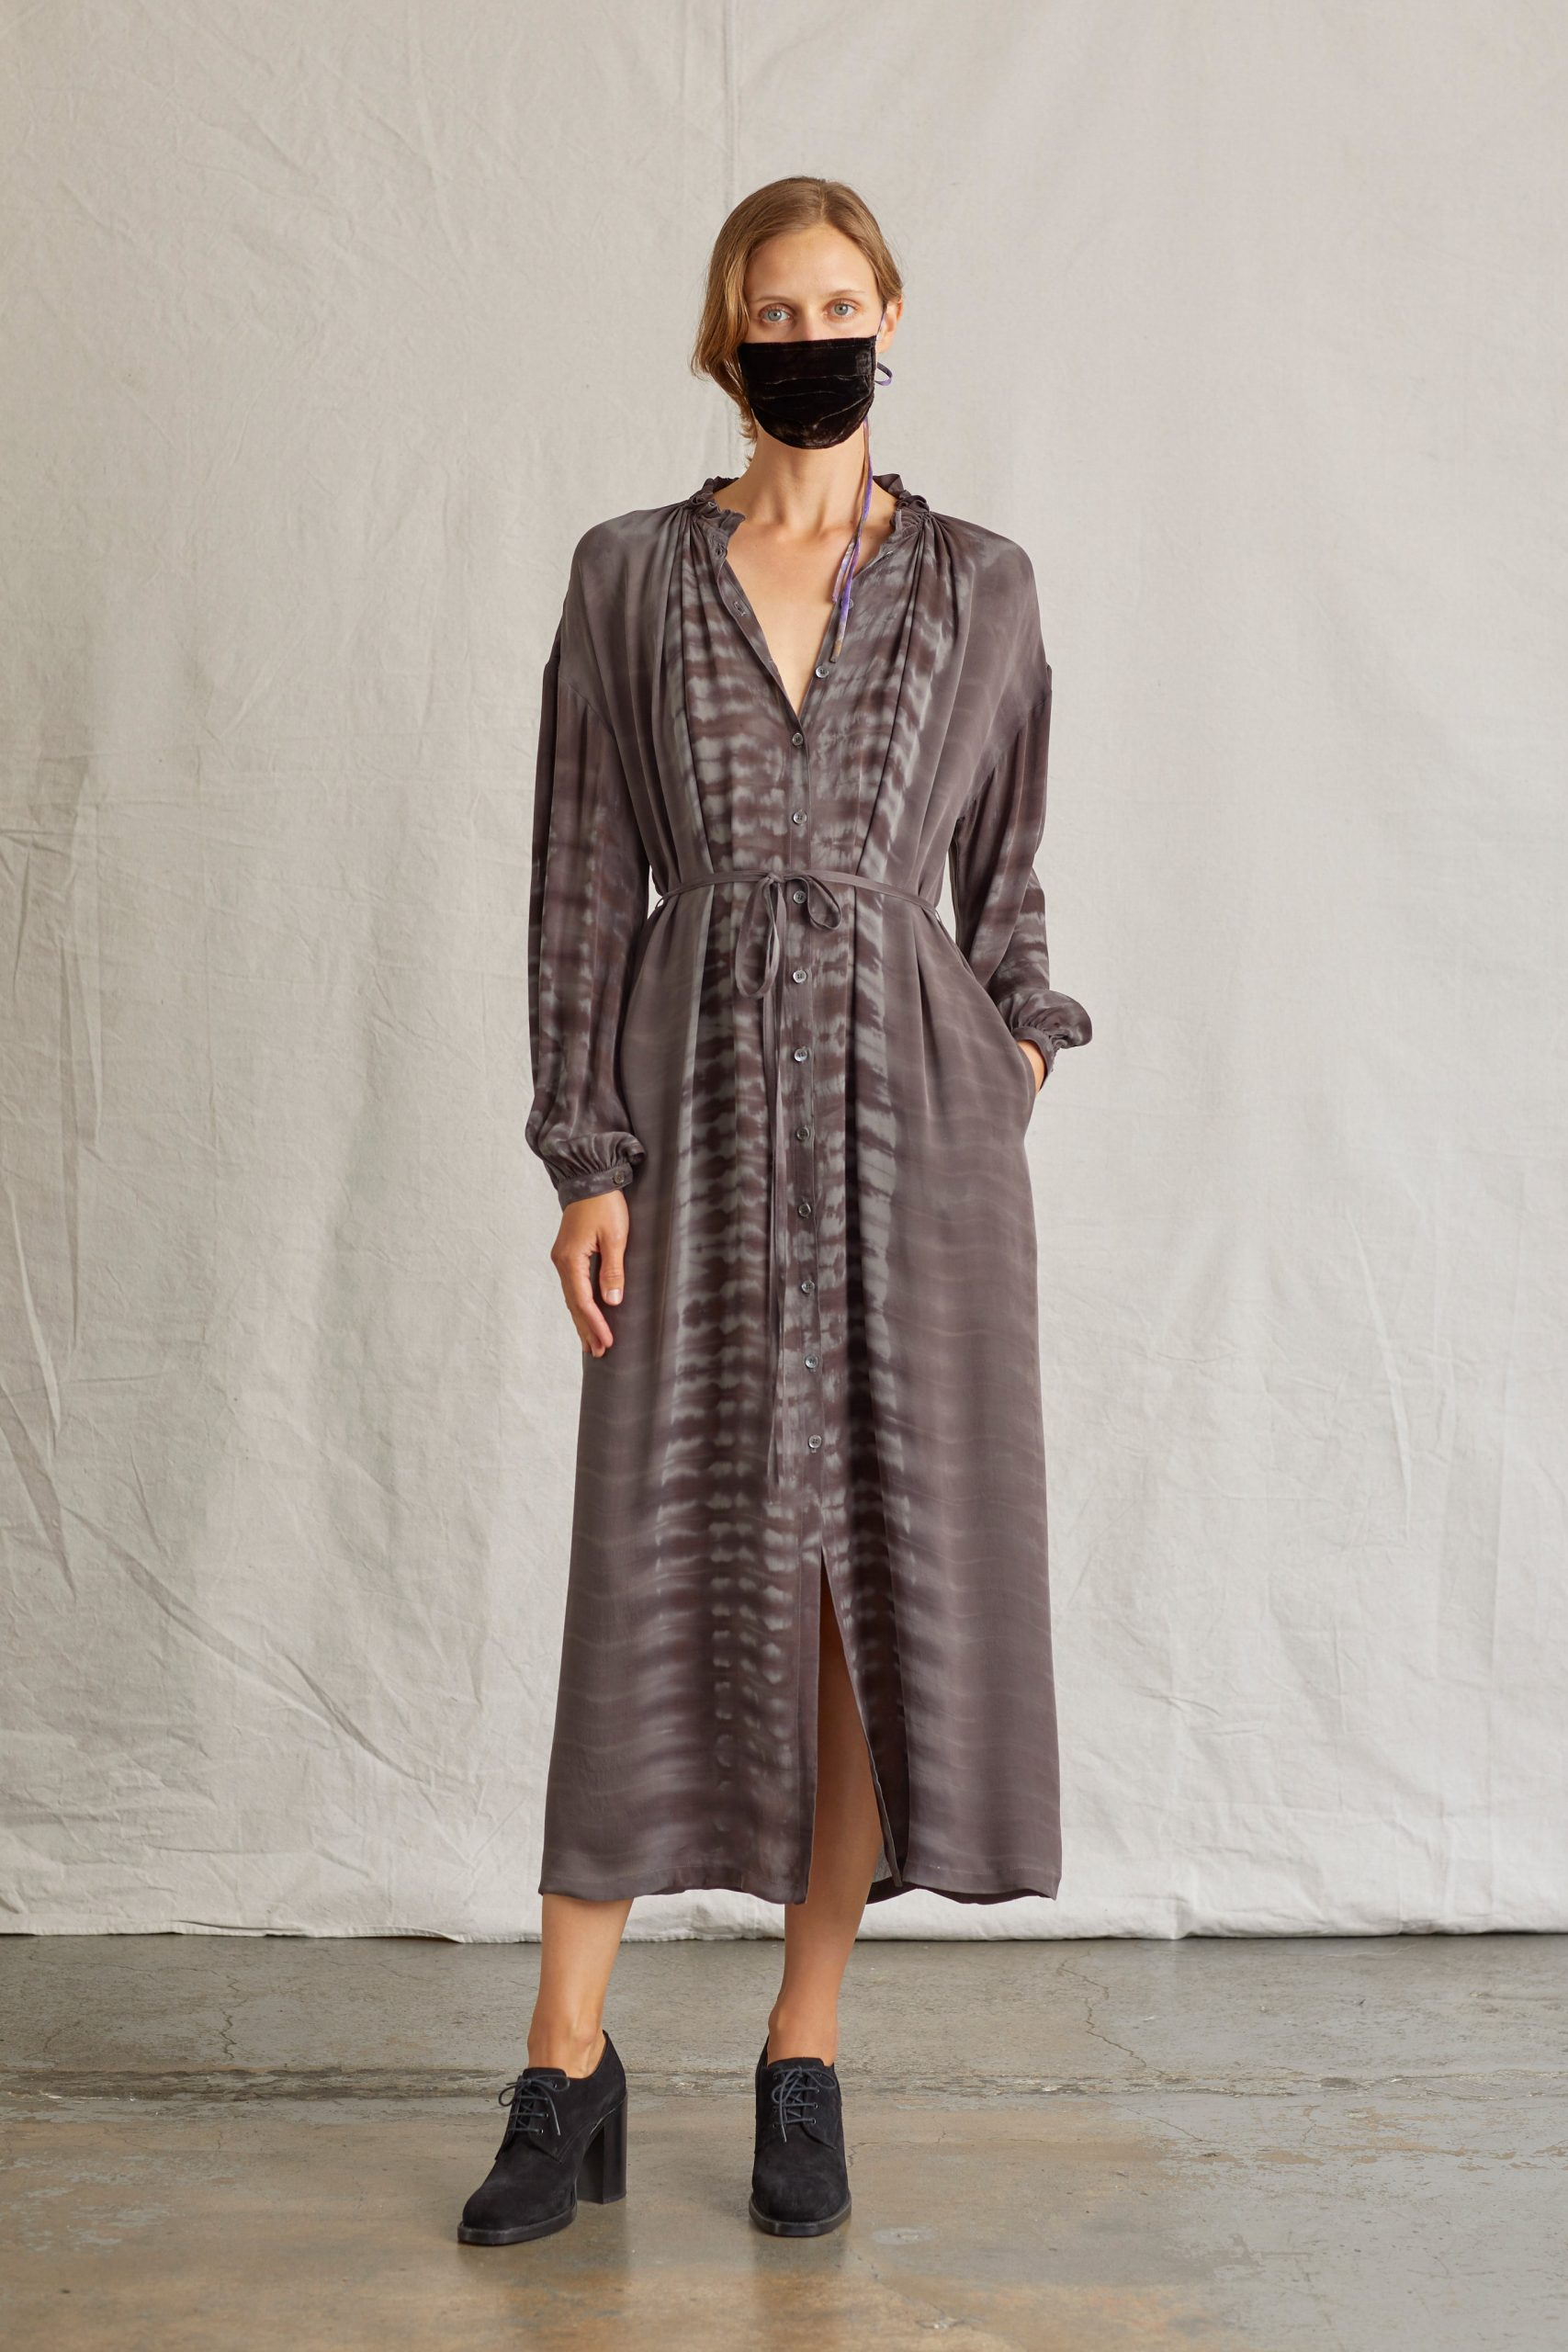 Raquel Allegra Resort 2021 Fashion Collection Photos